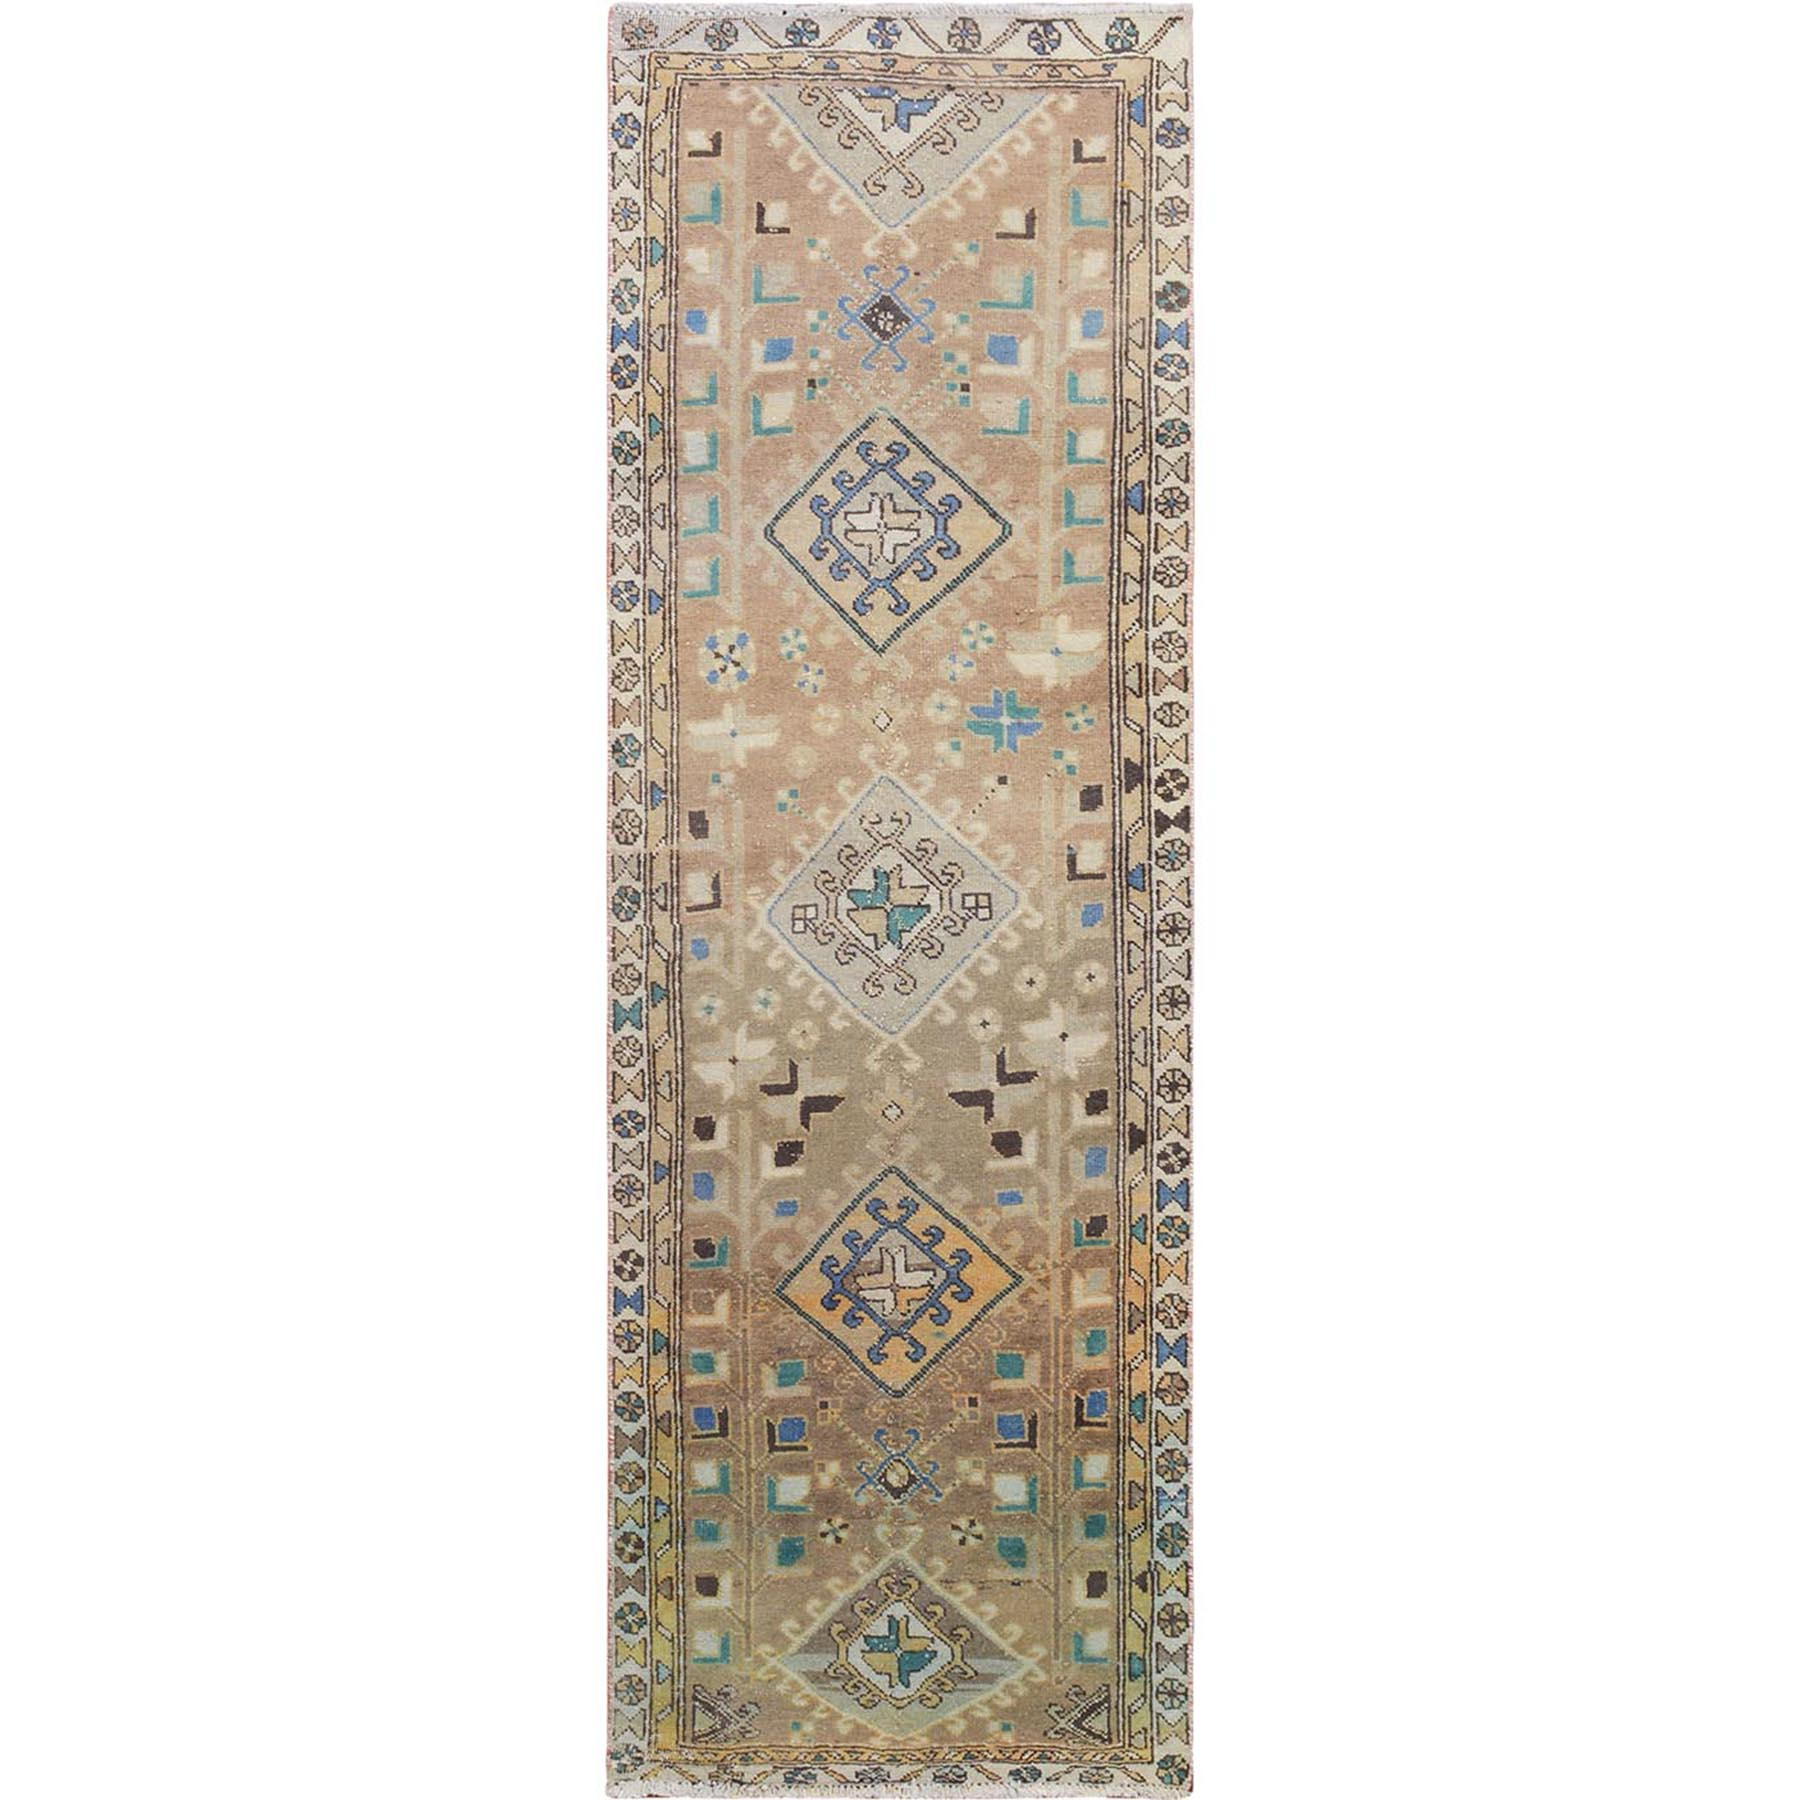 "2'9""x8'7"" Natural Colors Worn Down and Vintage North West Persian Runner Hand Knotted Oriental Rug"